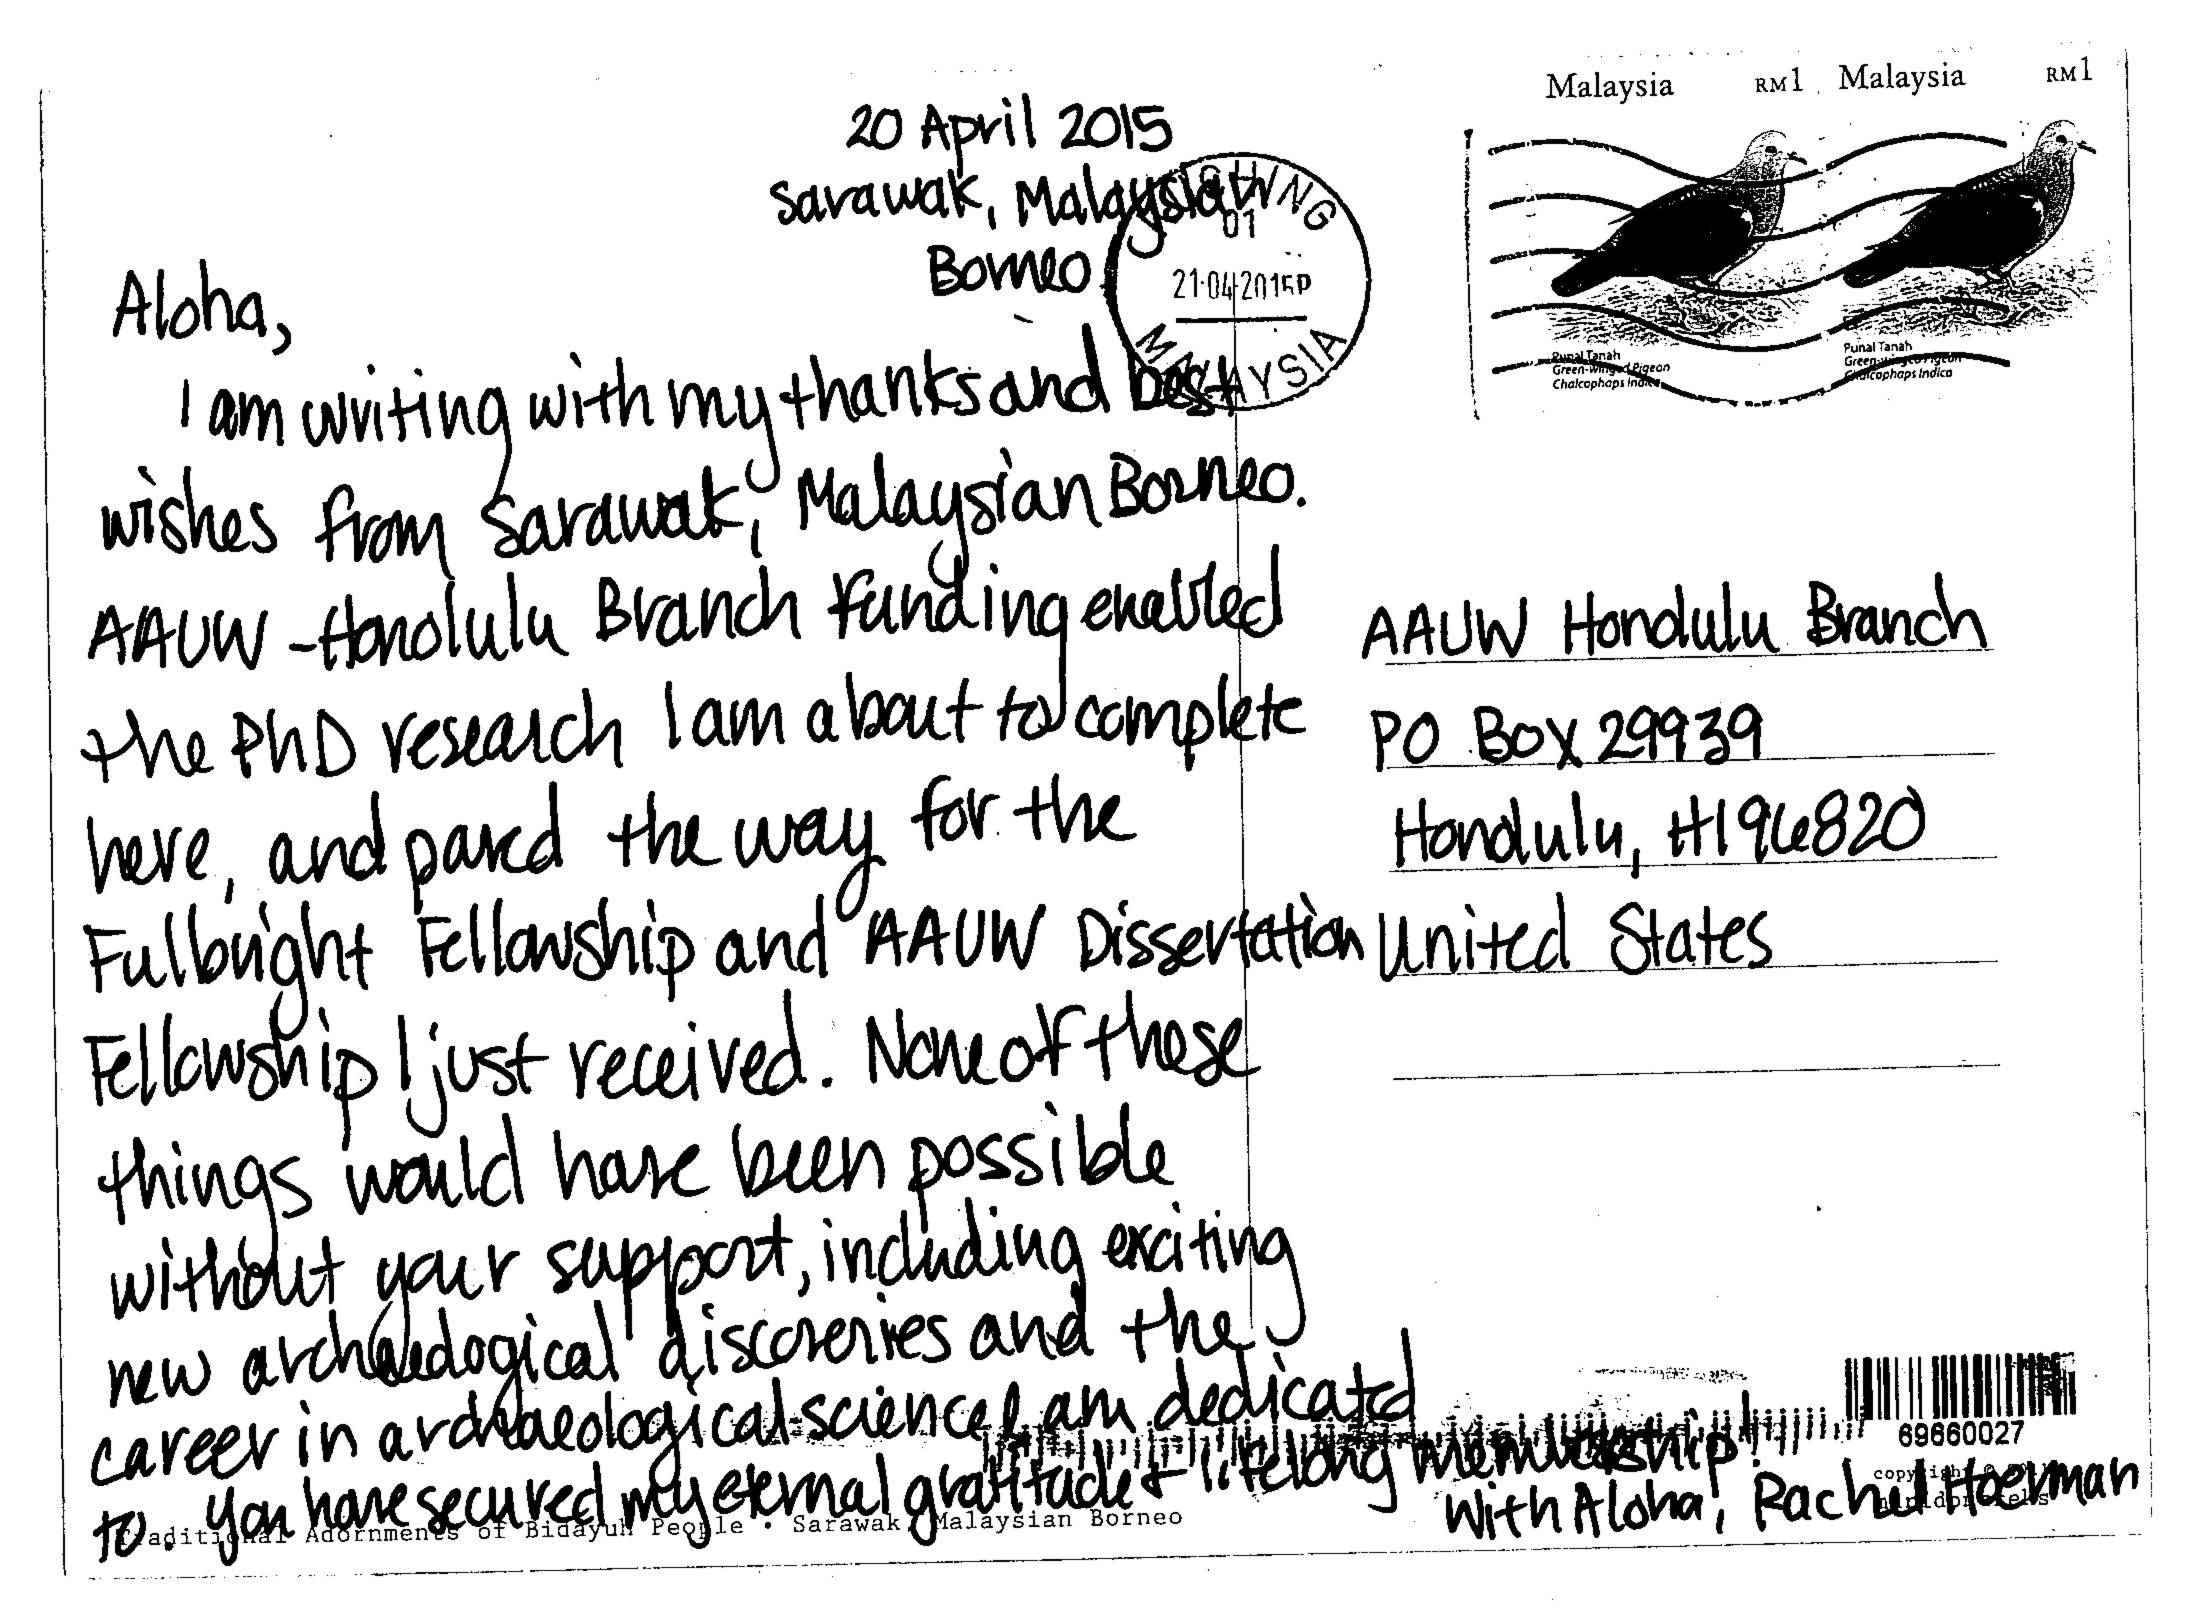 Postcard from Rachel Hoerman, 2014 AAUW Honolulu (HI) branch scholarship and 2015-16 AAUW American Fellowship awardee.